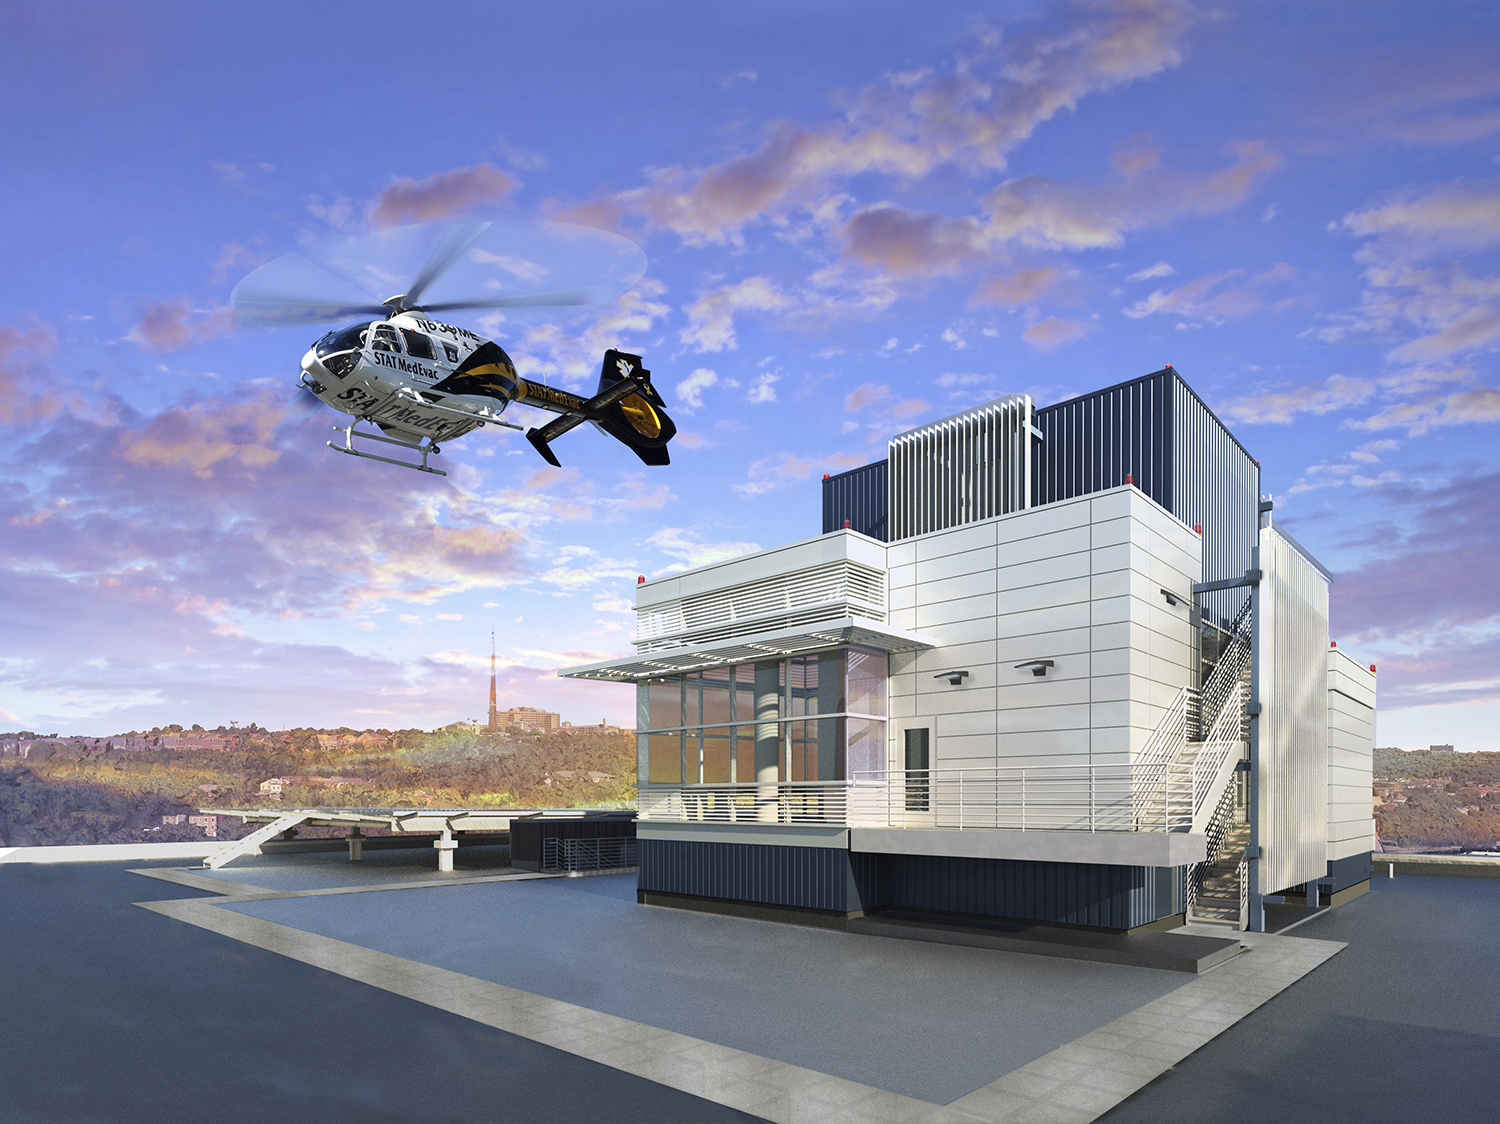 UPMC Mercy Heliport Relocation